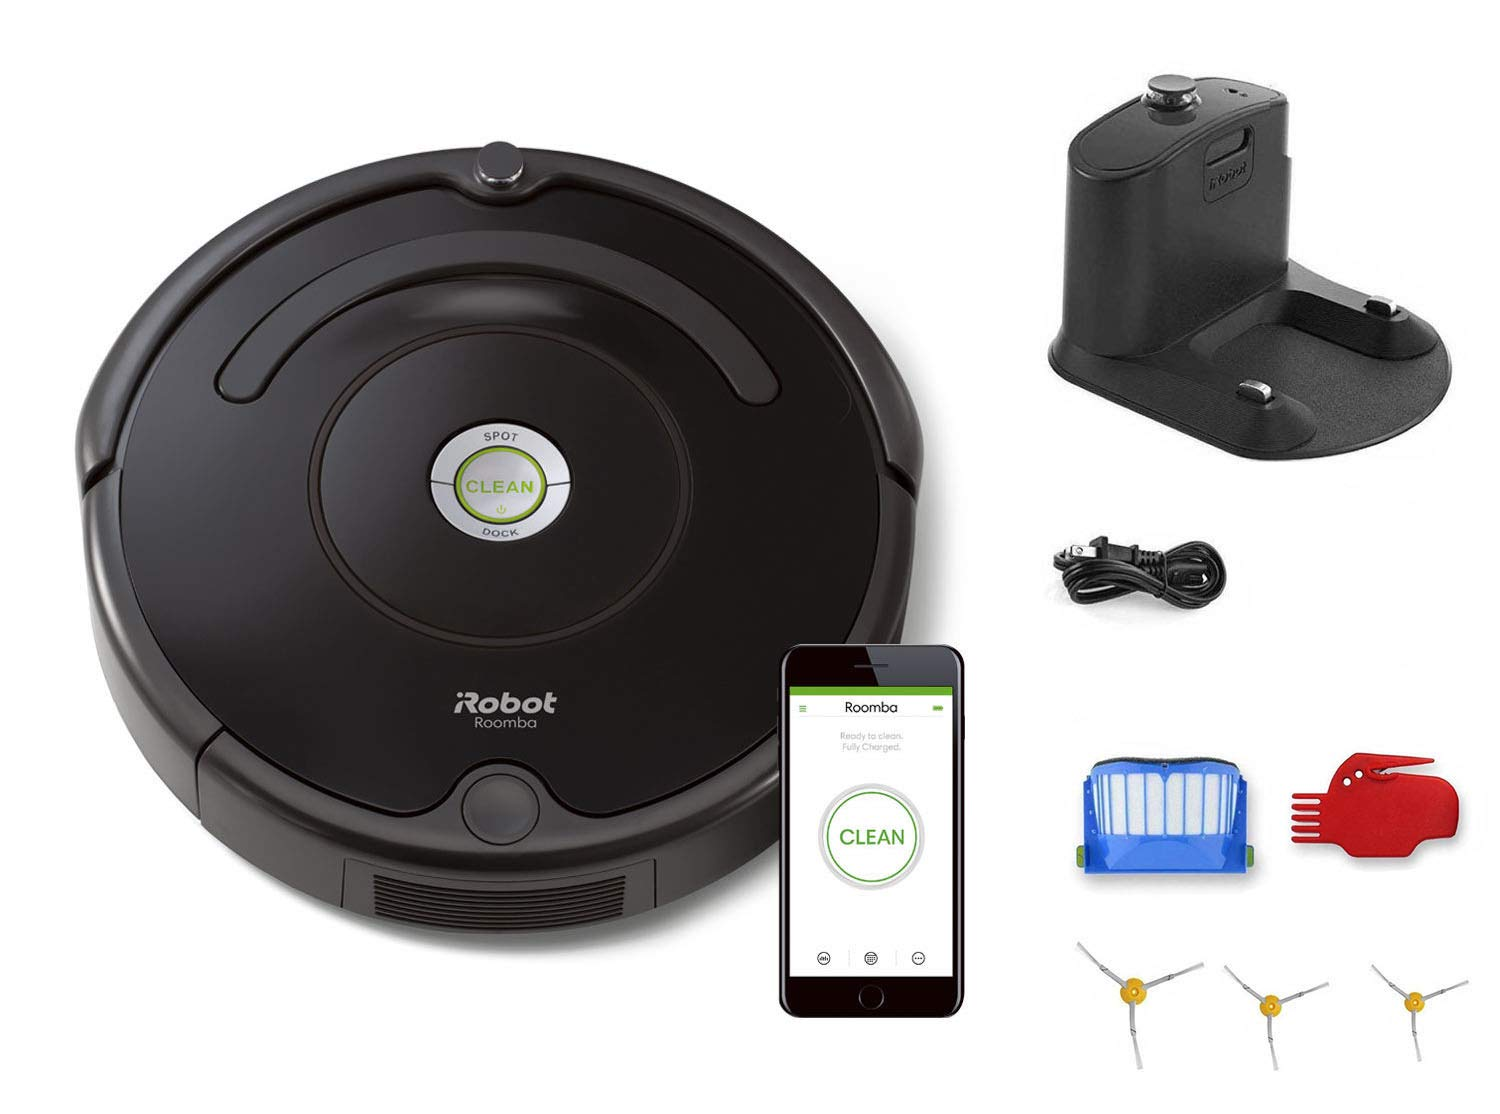 iRobot Roomba 675 Robot Vacuum Bundle - Wi-Fi Connected, Ideal for Pet Hair (+3 Extra Edge-Sweeping Brushes) (8 Items)